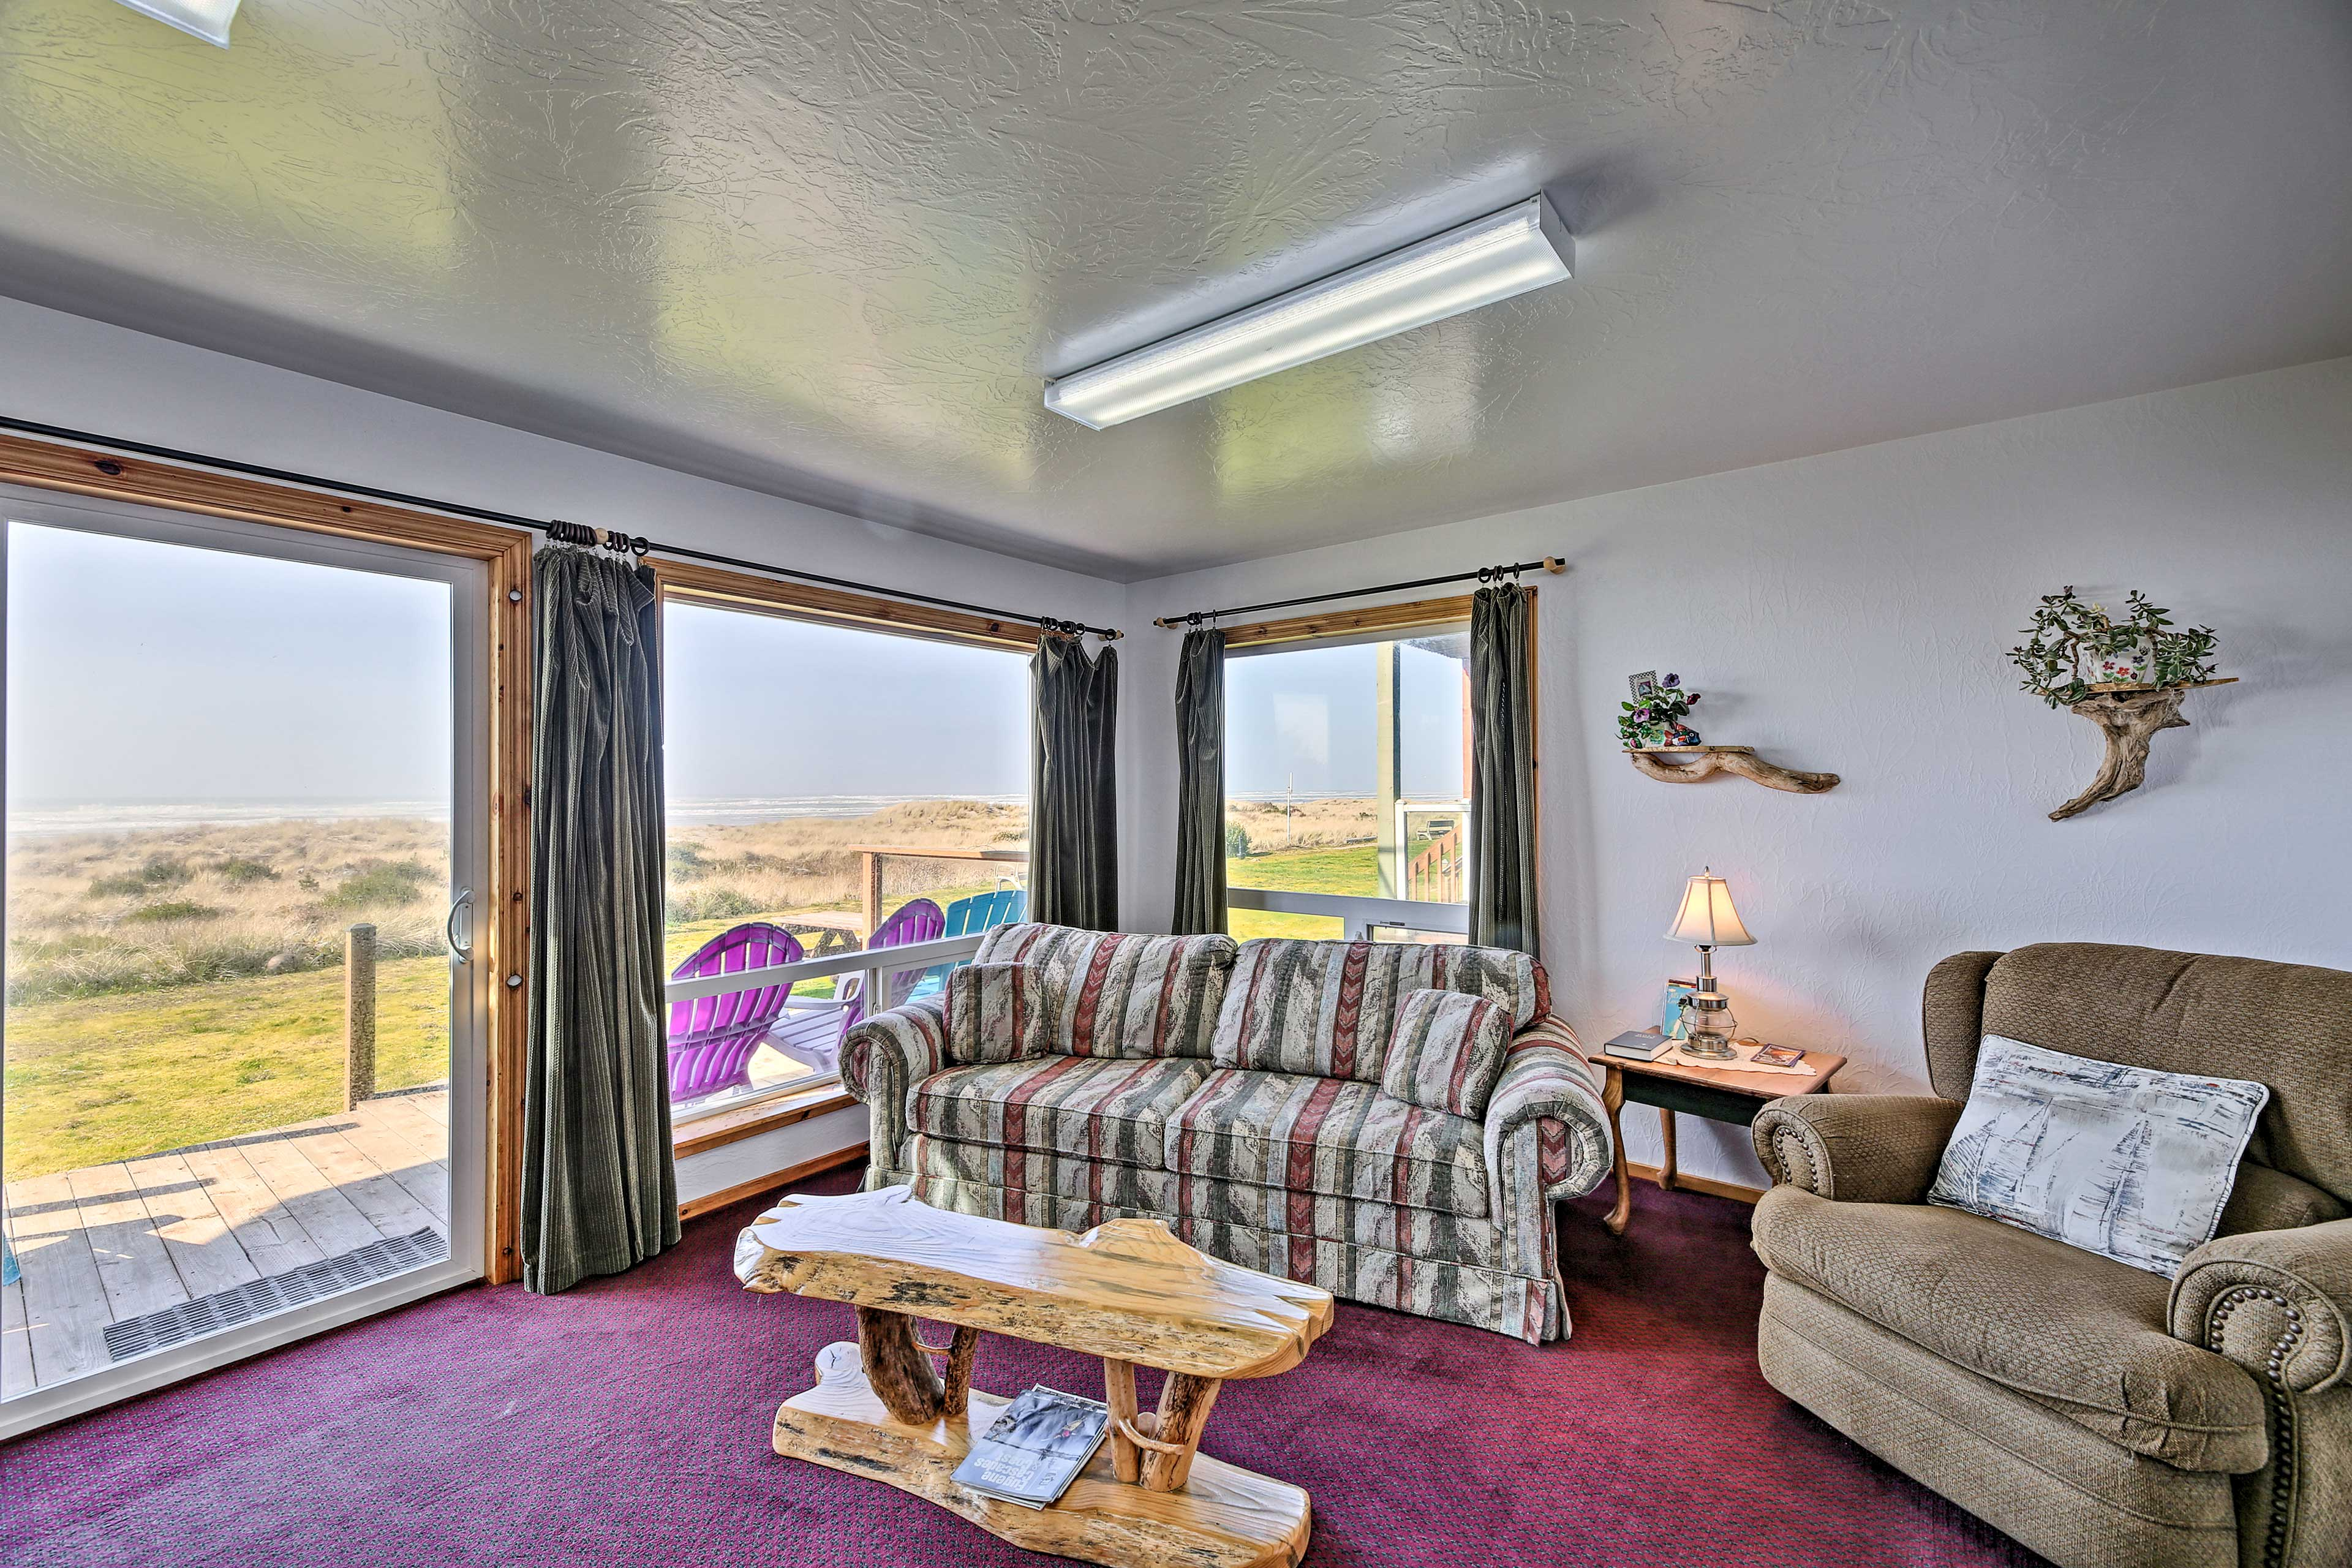 This home has large, picture windows with a view of the sea!